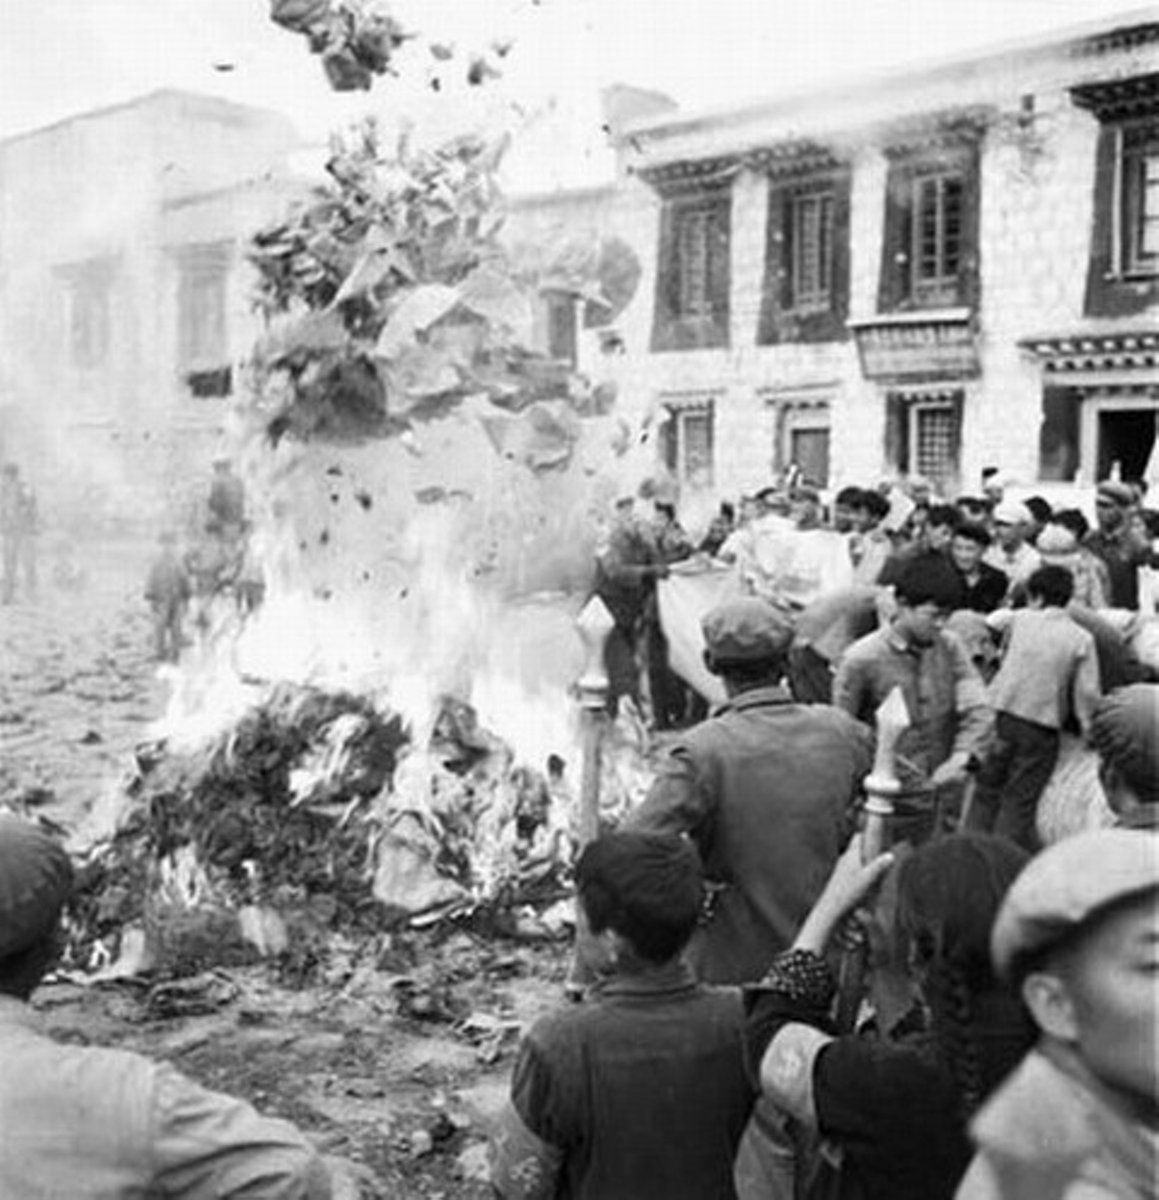 burning-religious-texts-and-antiques-during-the-cultural-revolution-.jpg